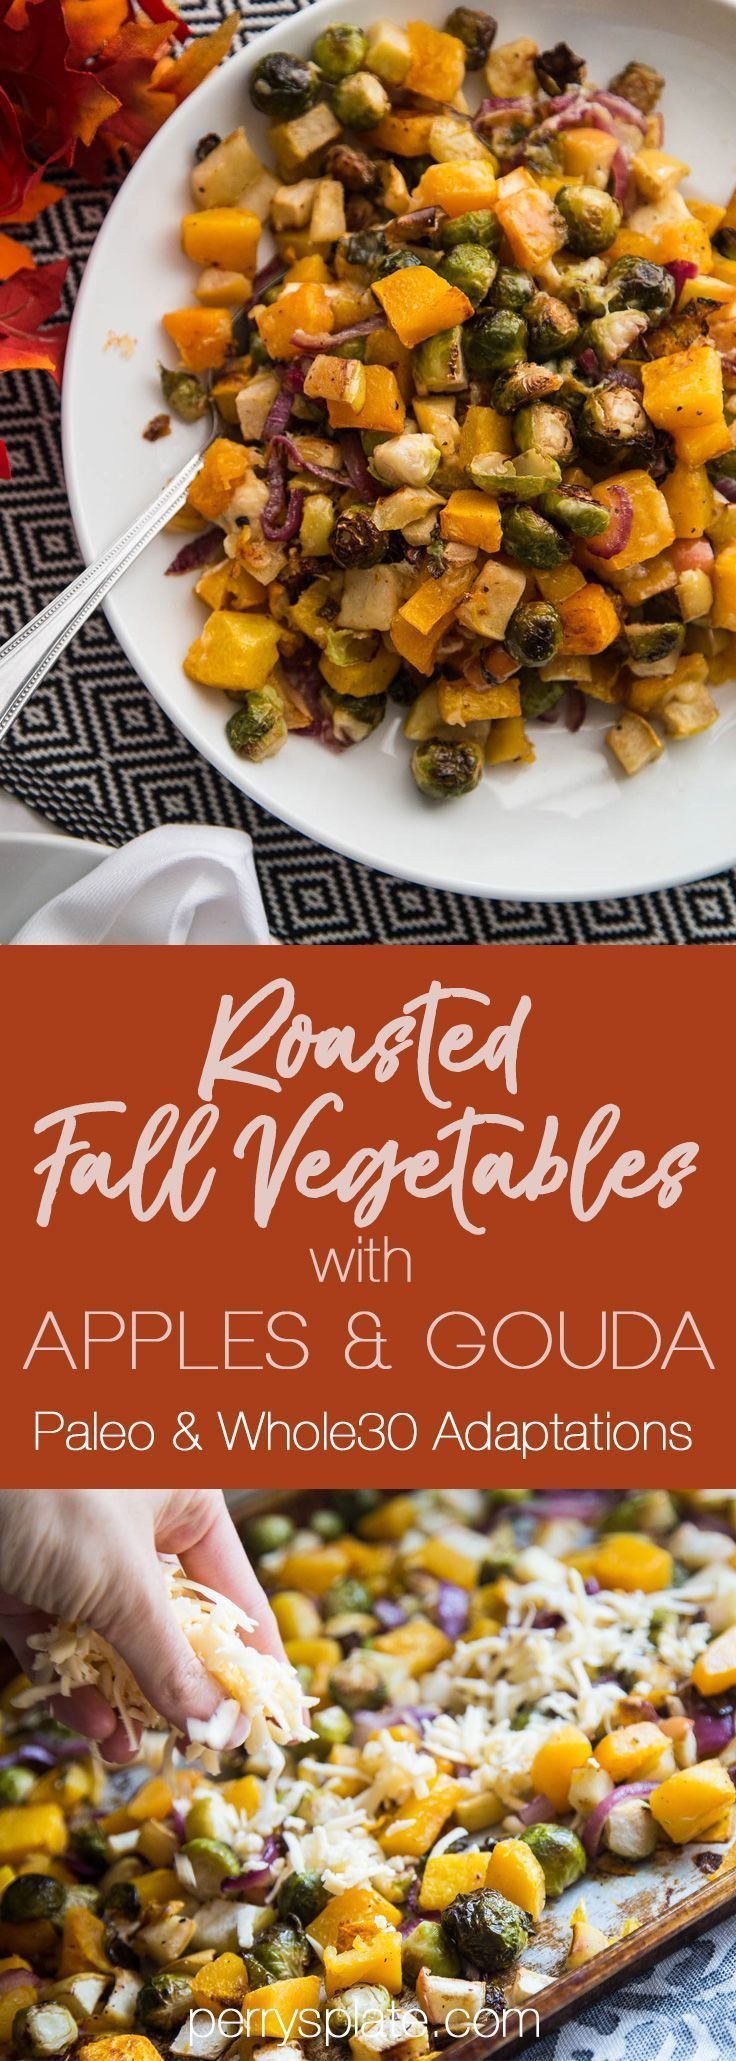 Roasted Fall Vegetables with Apples & Gouda - Perry's Plate #thanksgivingrecipessidedishes